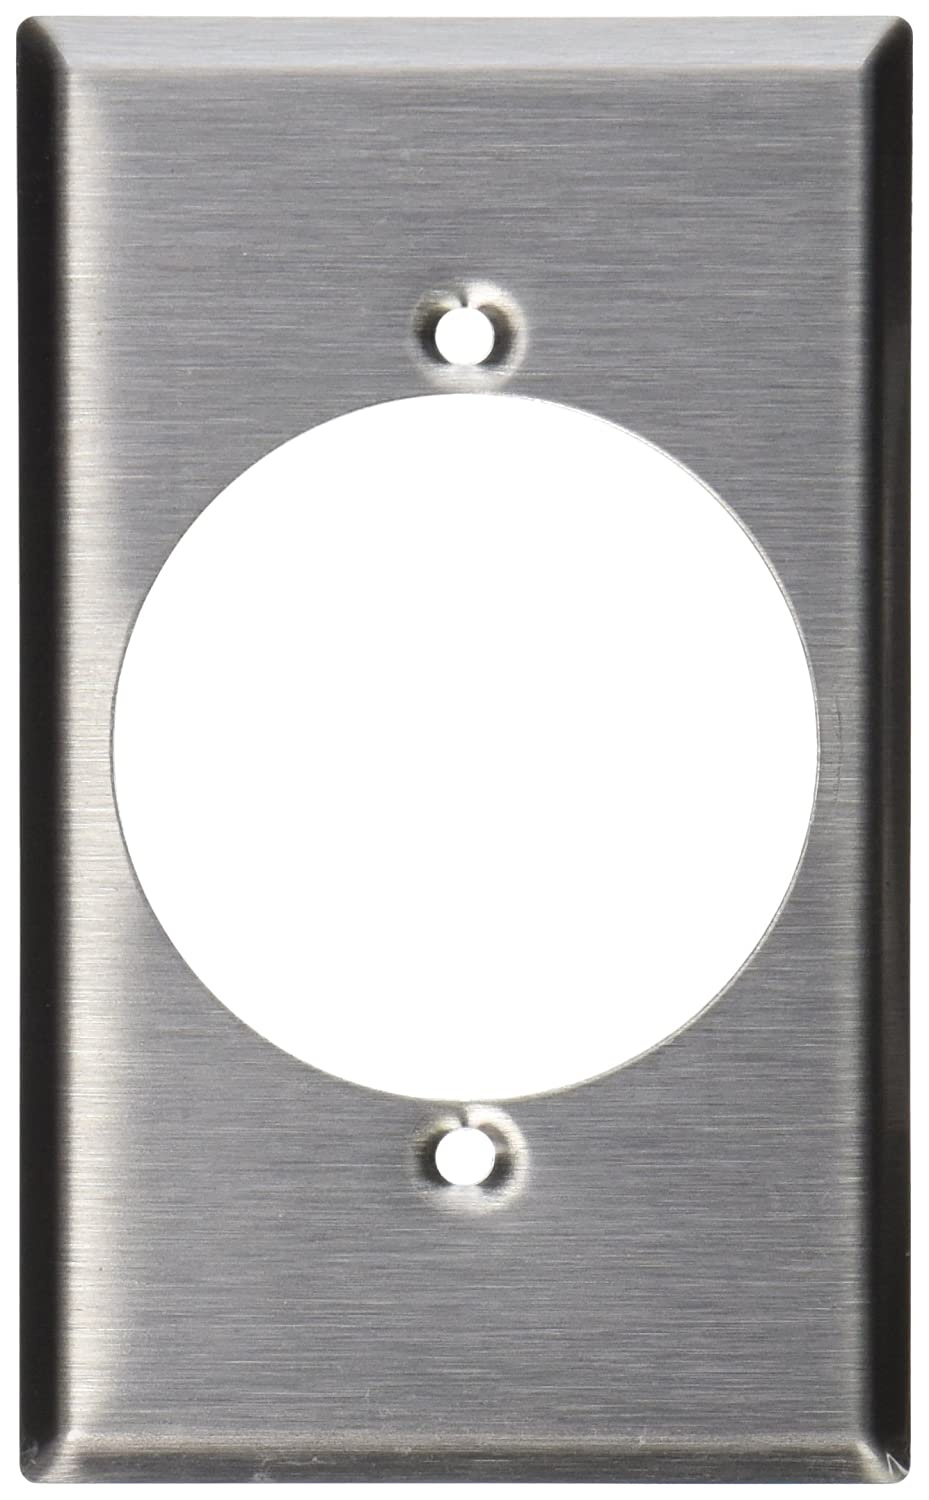 Leviton 003-84028 Receptacle Standard Size Wall Plate, 1 Gang, 4-1/2 In L X 2-3/4 In W 0.187 In T, Smooth, Stainless steel